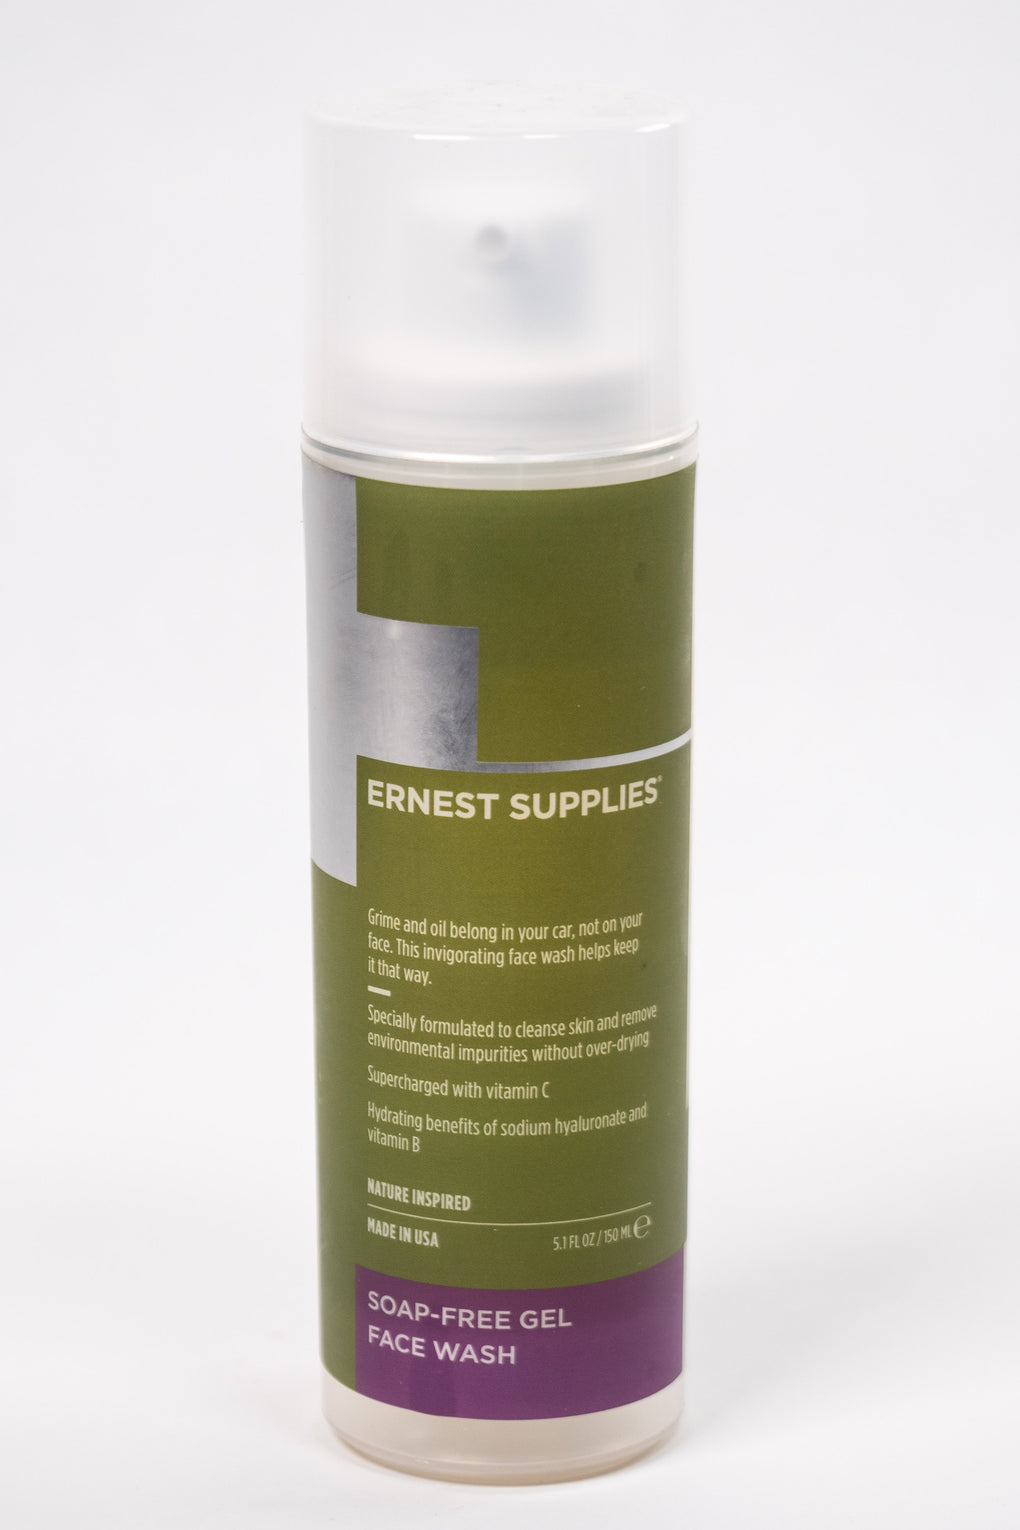 Ernest Supplies Soap-Free Face Wash at Consigliere